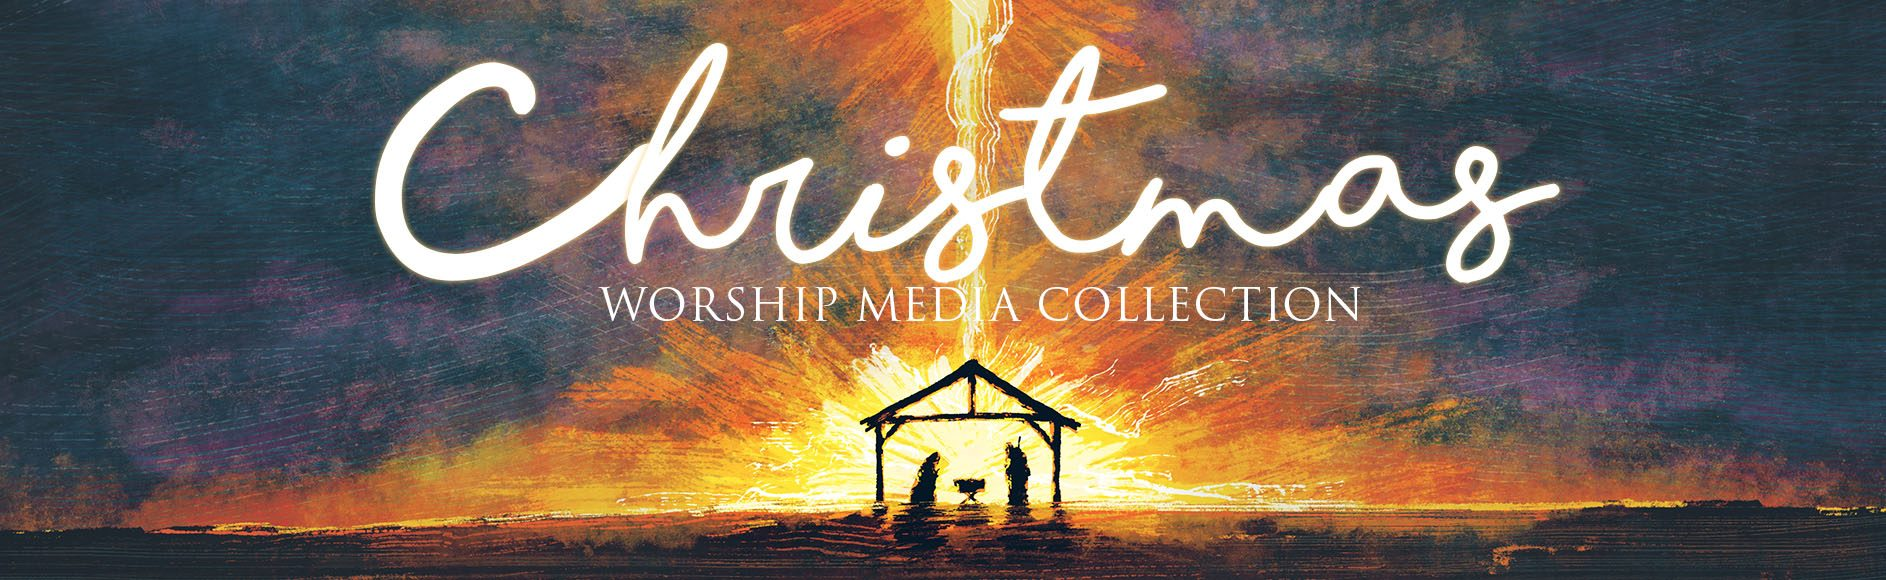 Top Christmas Graphics for Church - Advent Video Loop